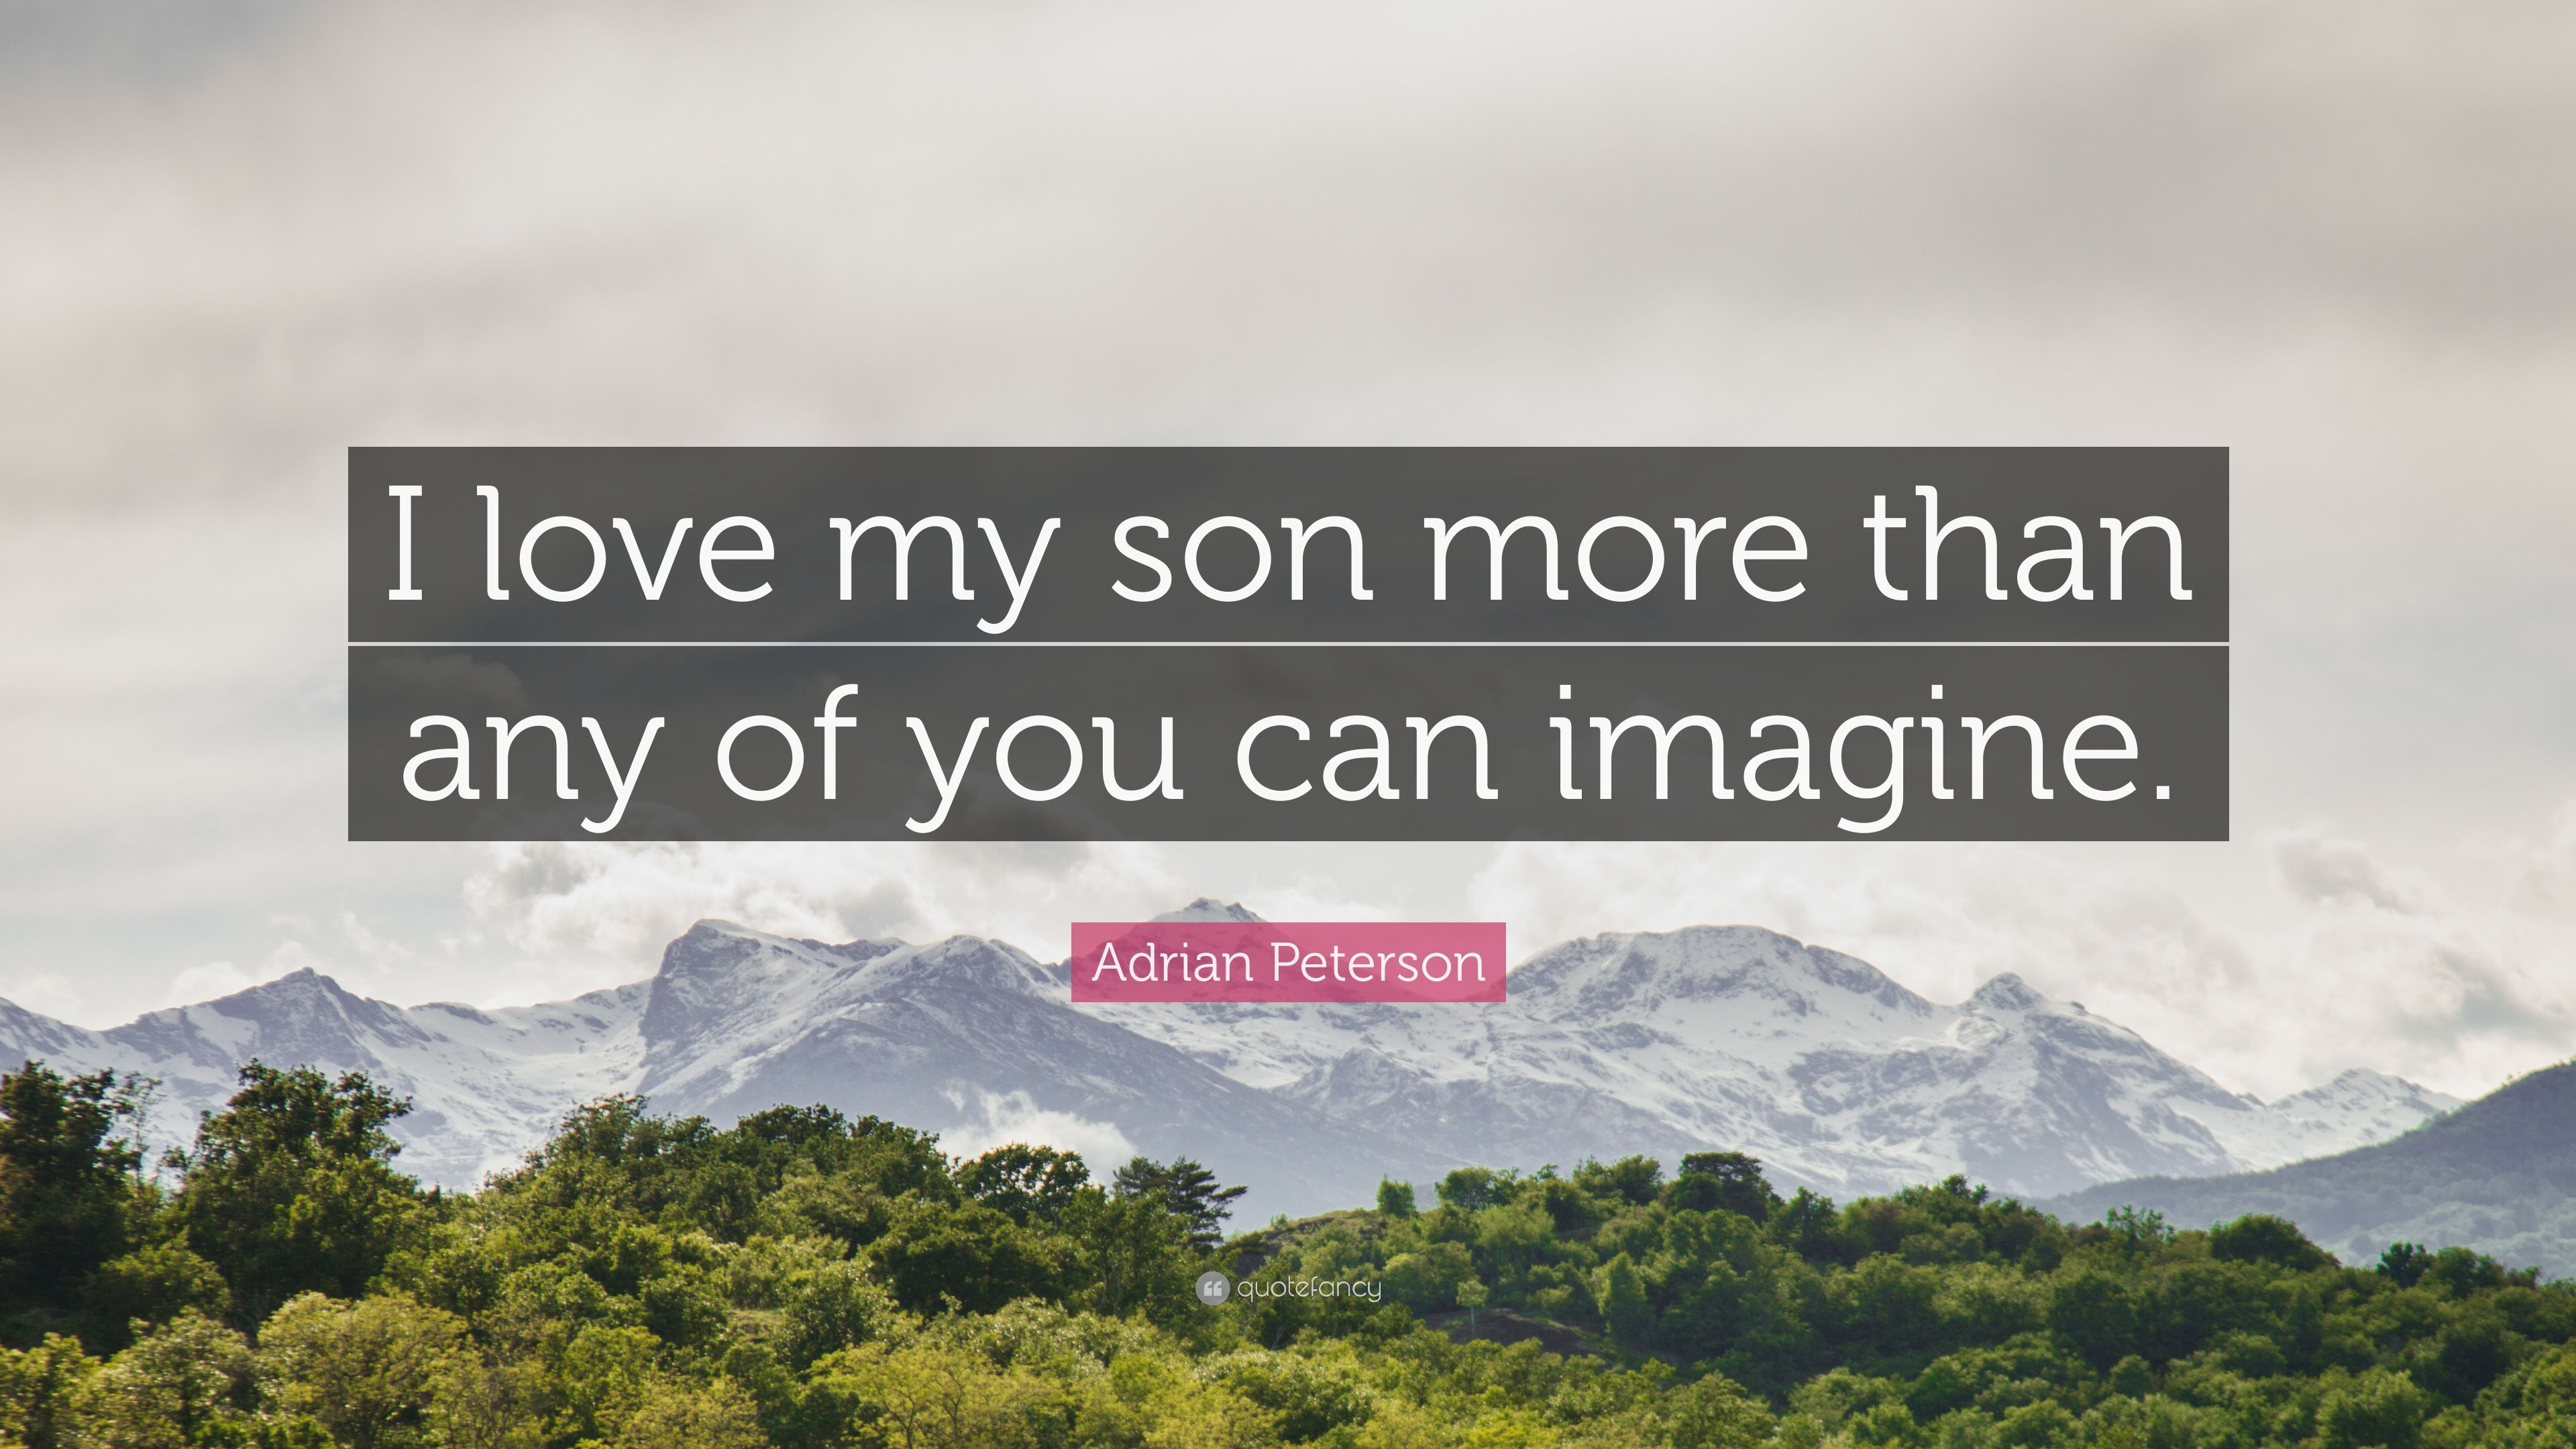 Adrian Peterson Quote I Love My Son More Than Any Of You Can